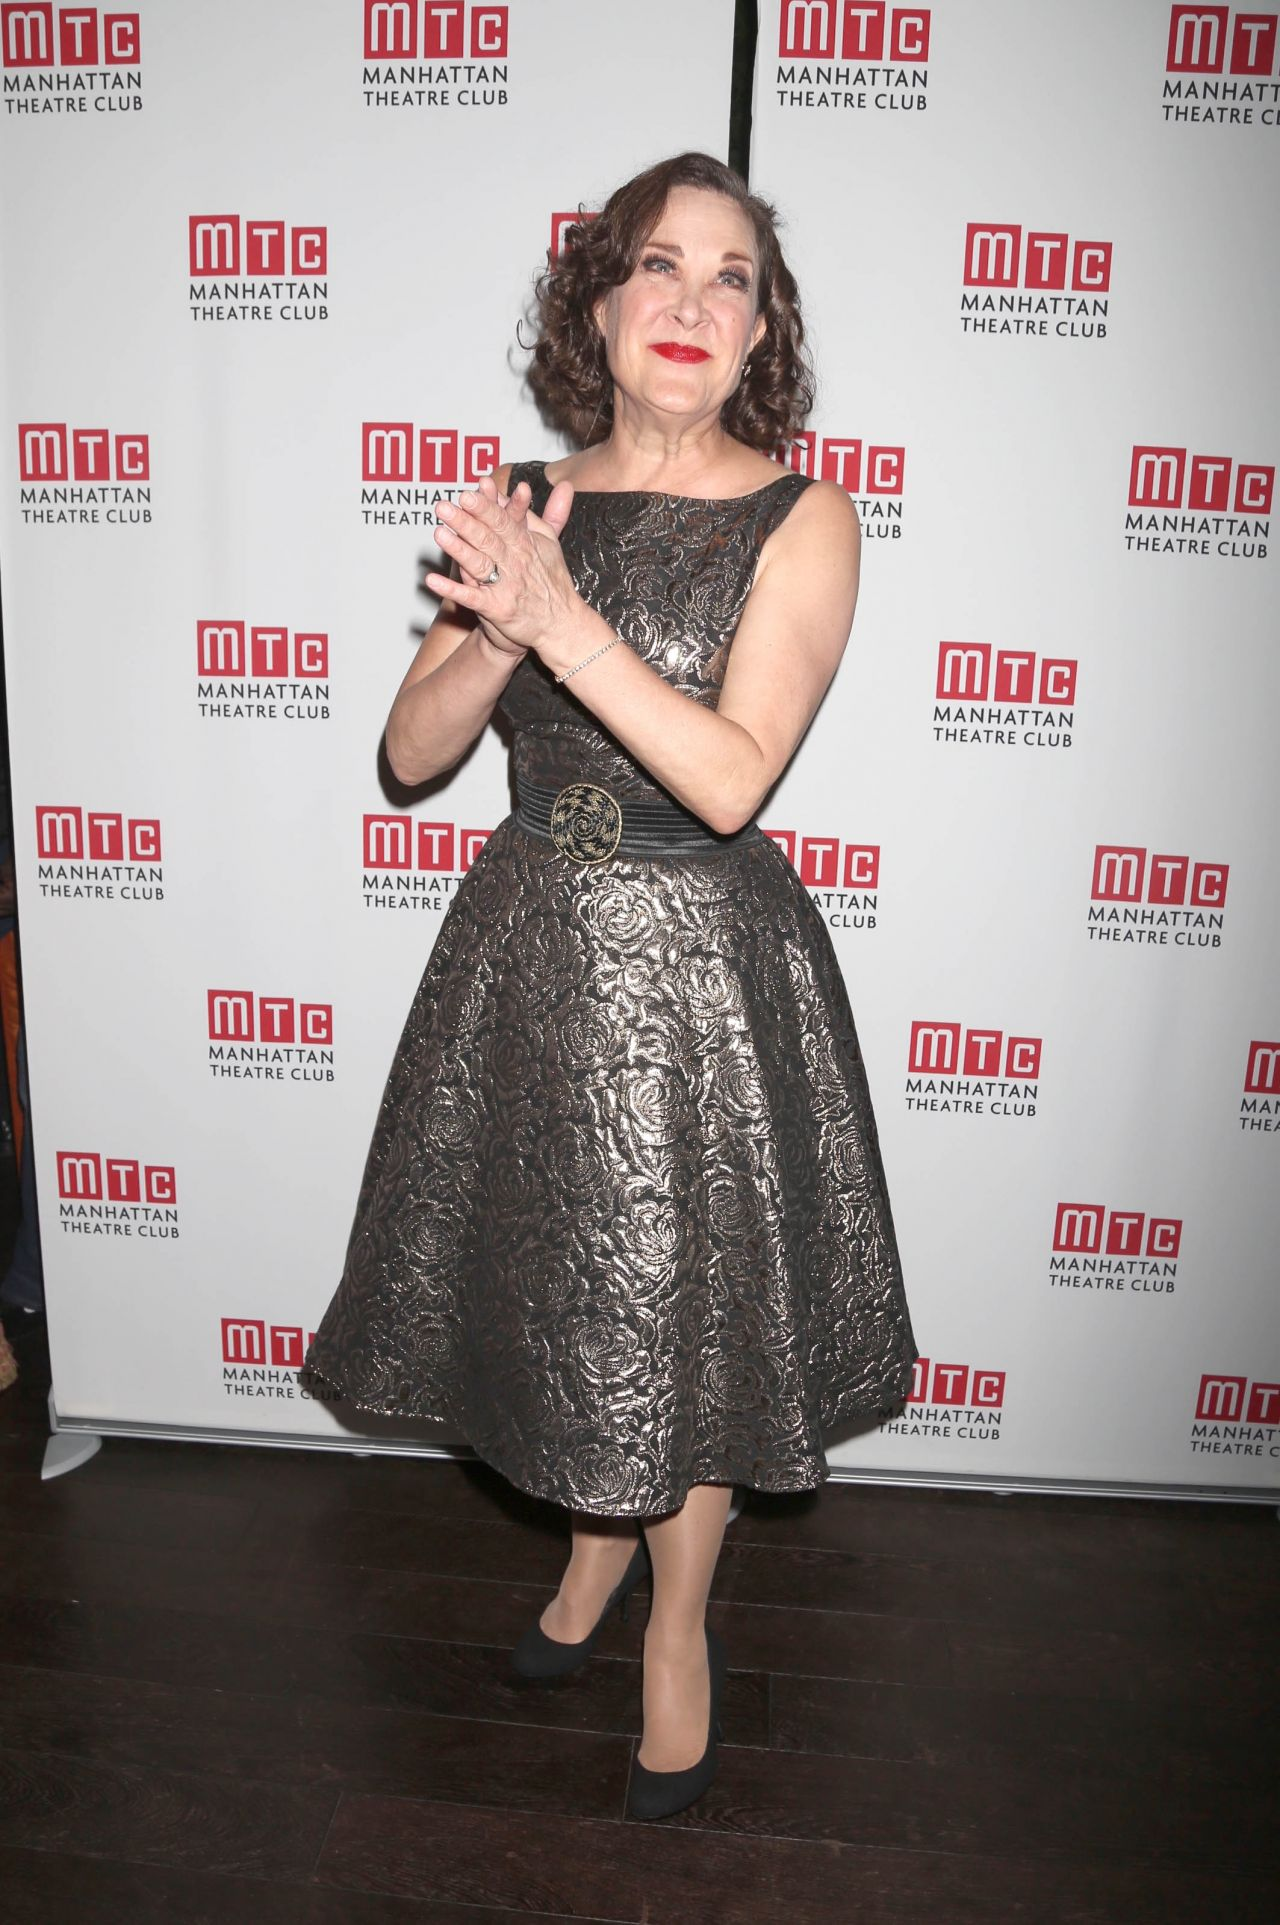 Margaret colin prince of broadway premiere in new york - 2019 year